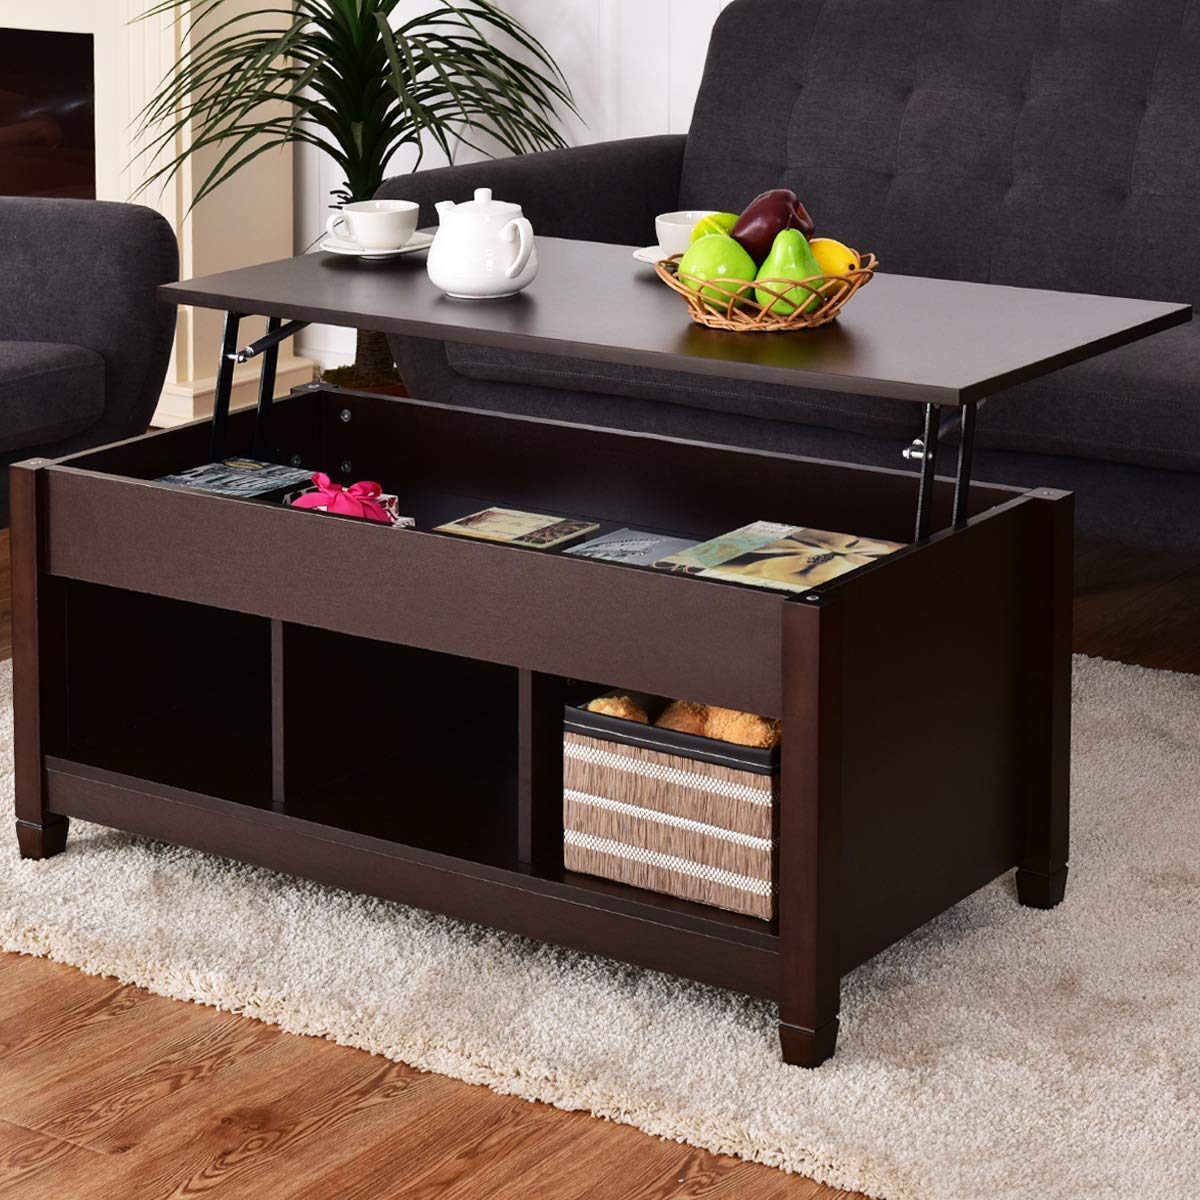 Lift Table Coffee Table: NEW MODERN COFFEE TABLE LIFT TOP END TABLE STORAGE